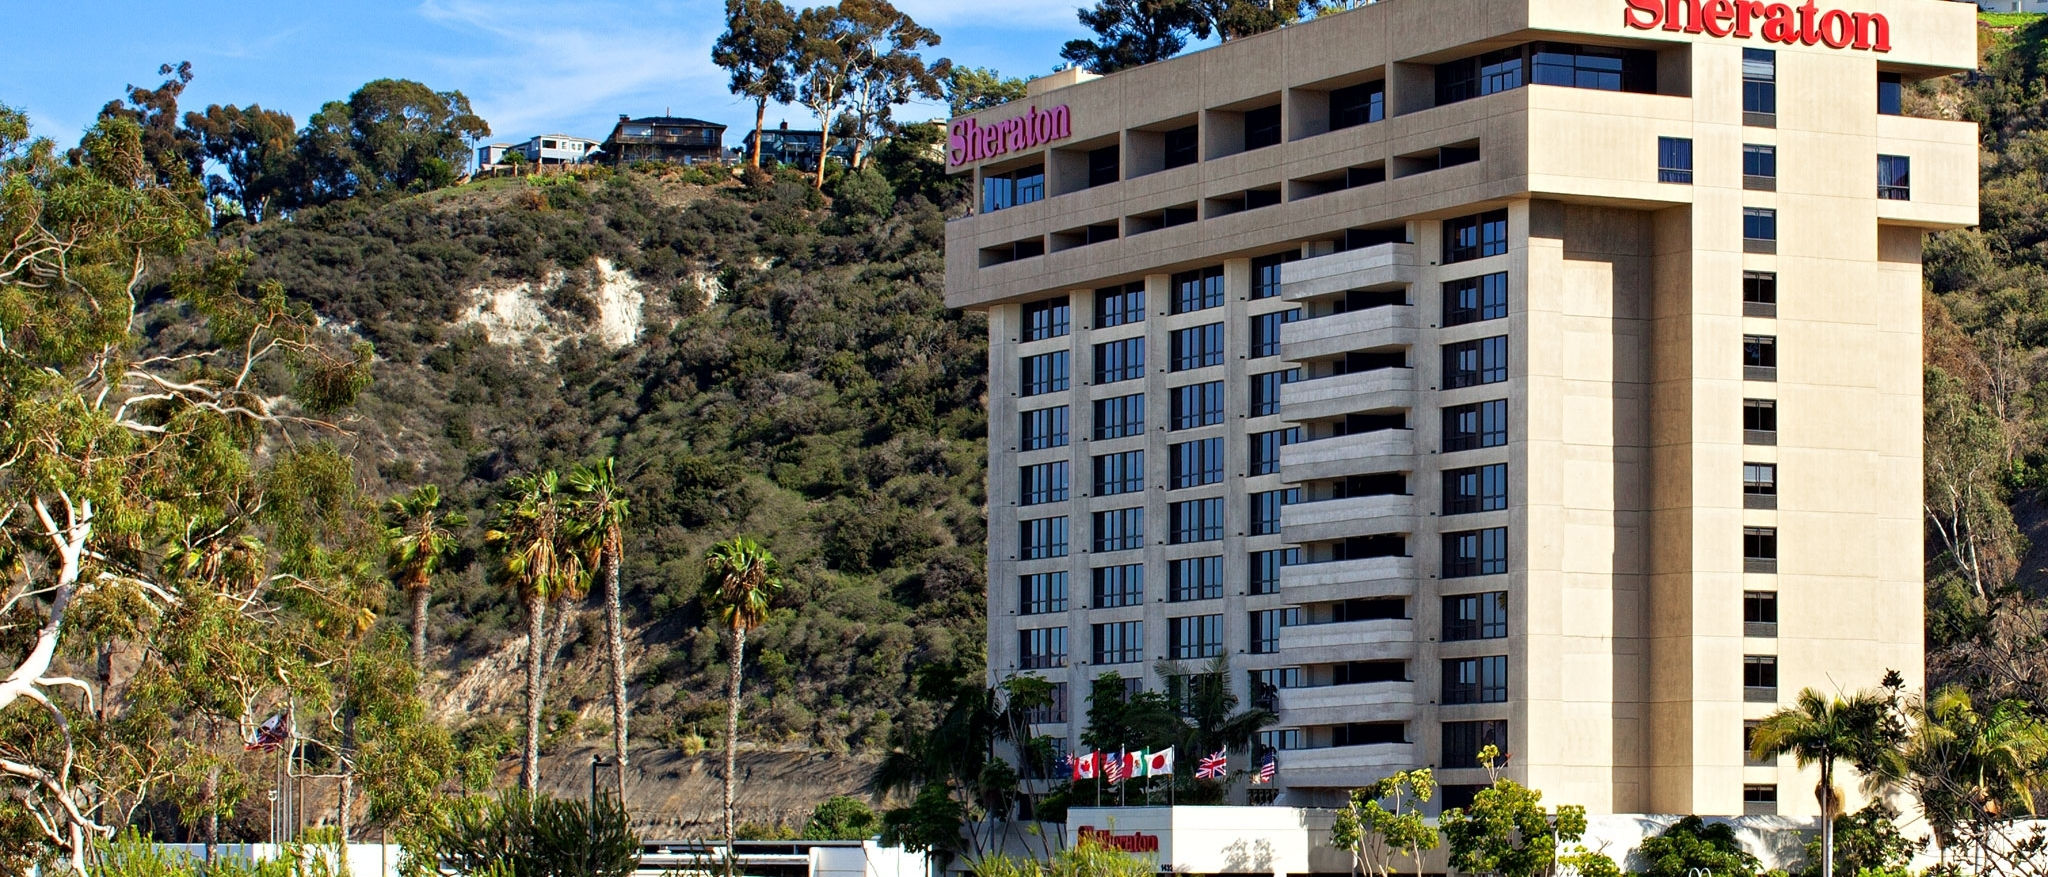 Pet Friendly hotel in San Diego, Sheraton Mission Valley